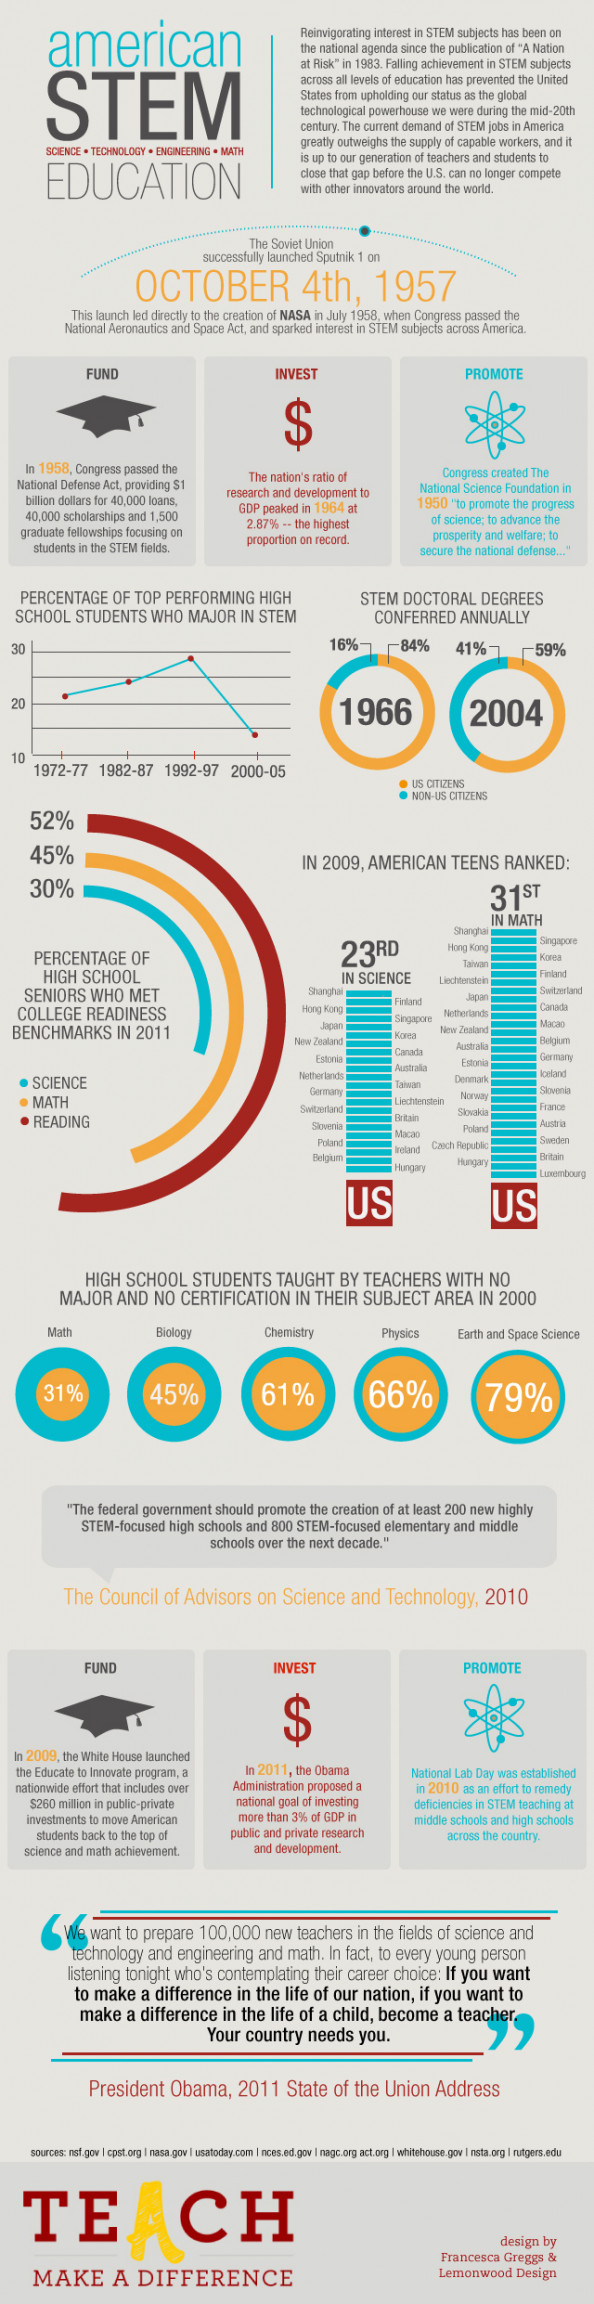 American Stem Education Infographic